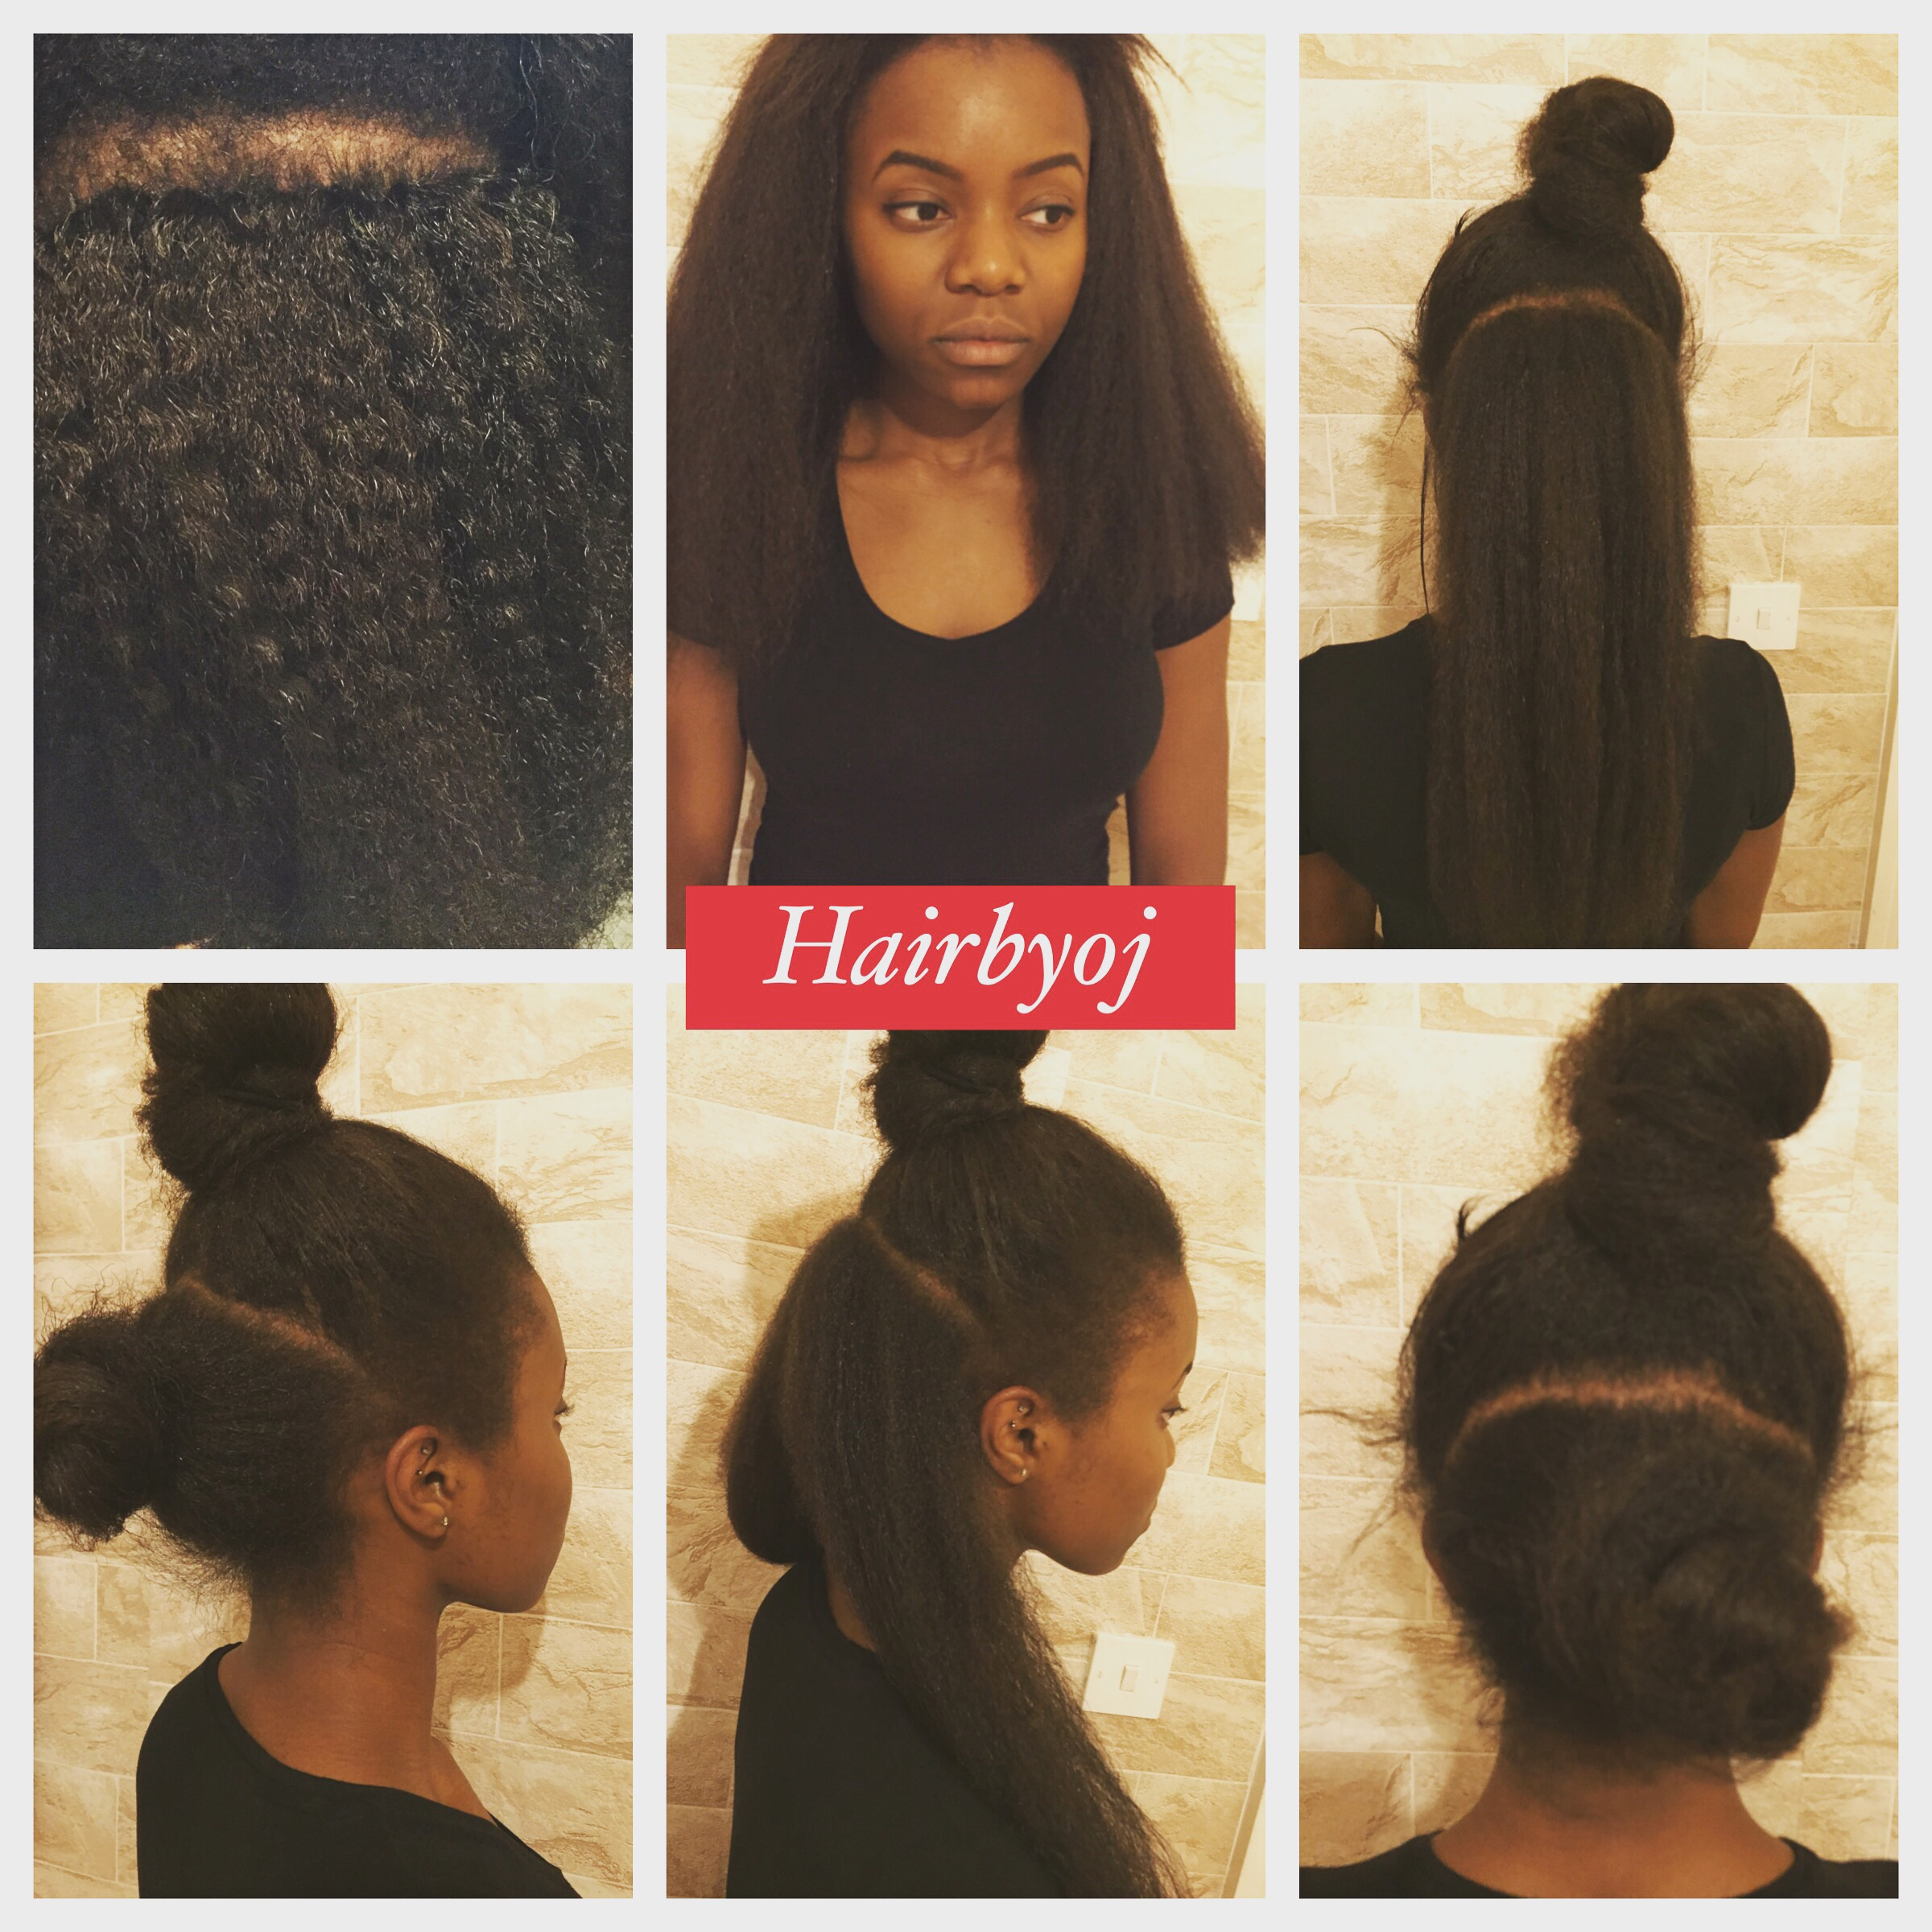 Crochet Marley Hair Vixen : ... part vixen crochet braids with Marley hair and leave out ? hairbyoj